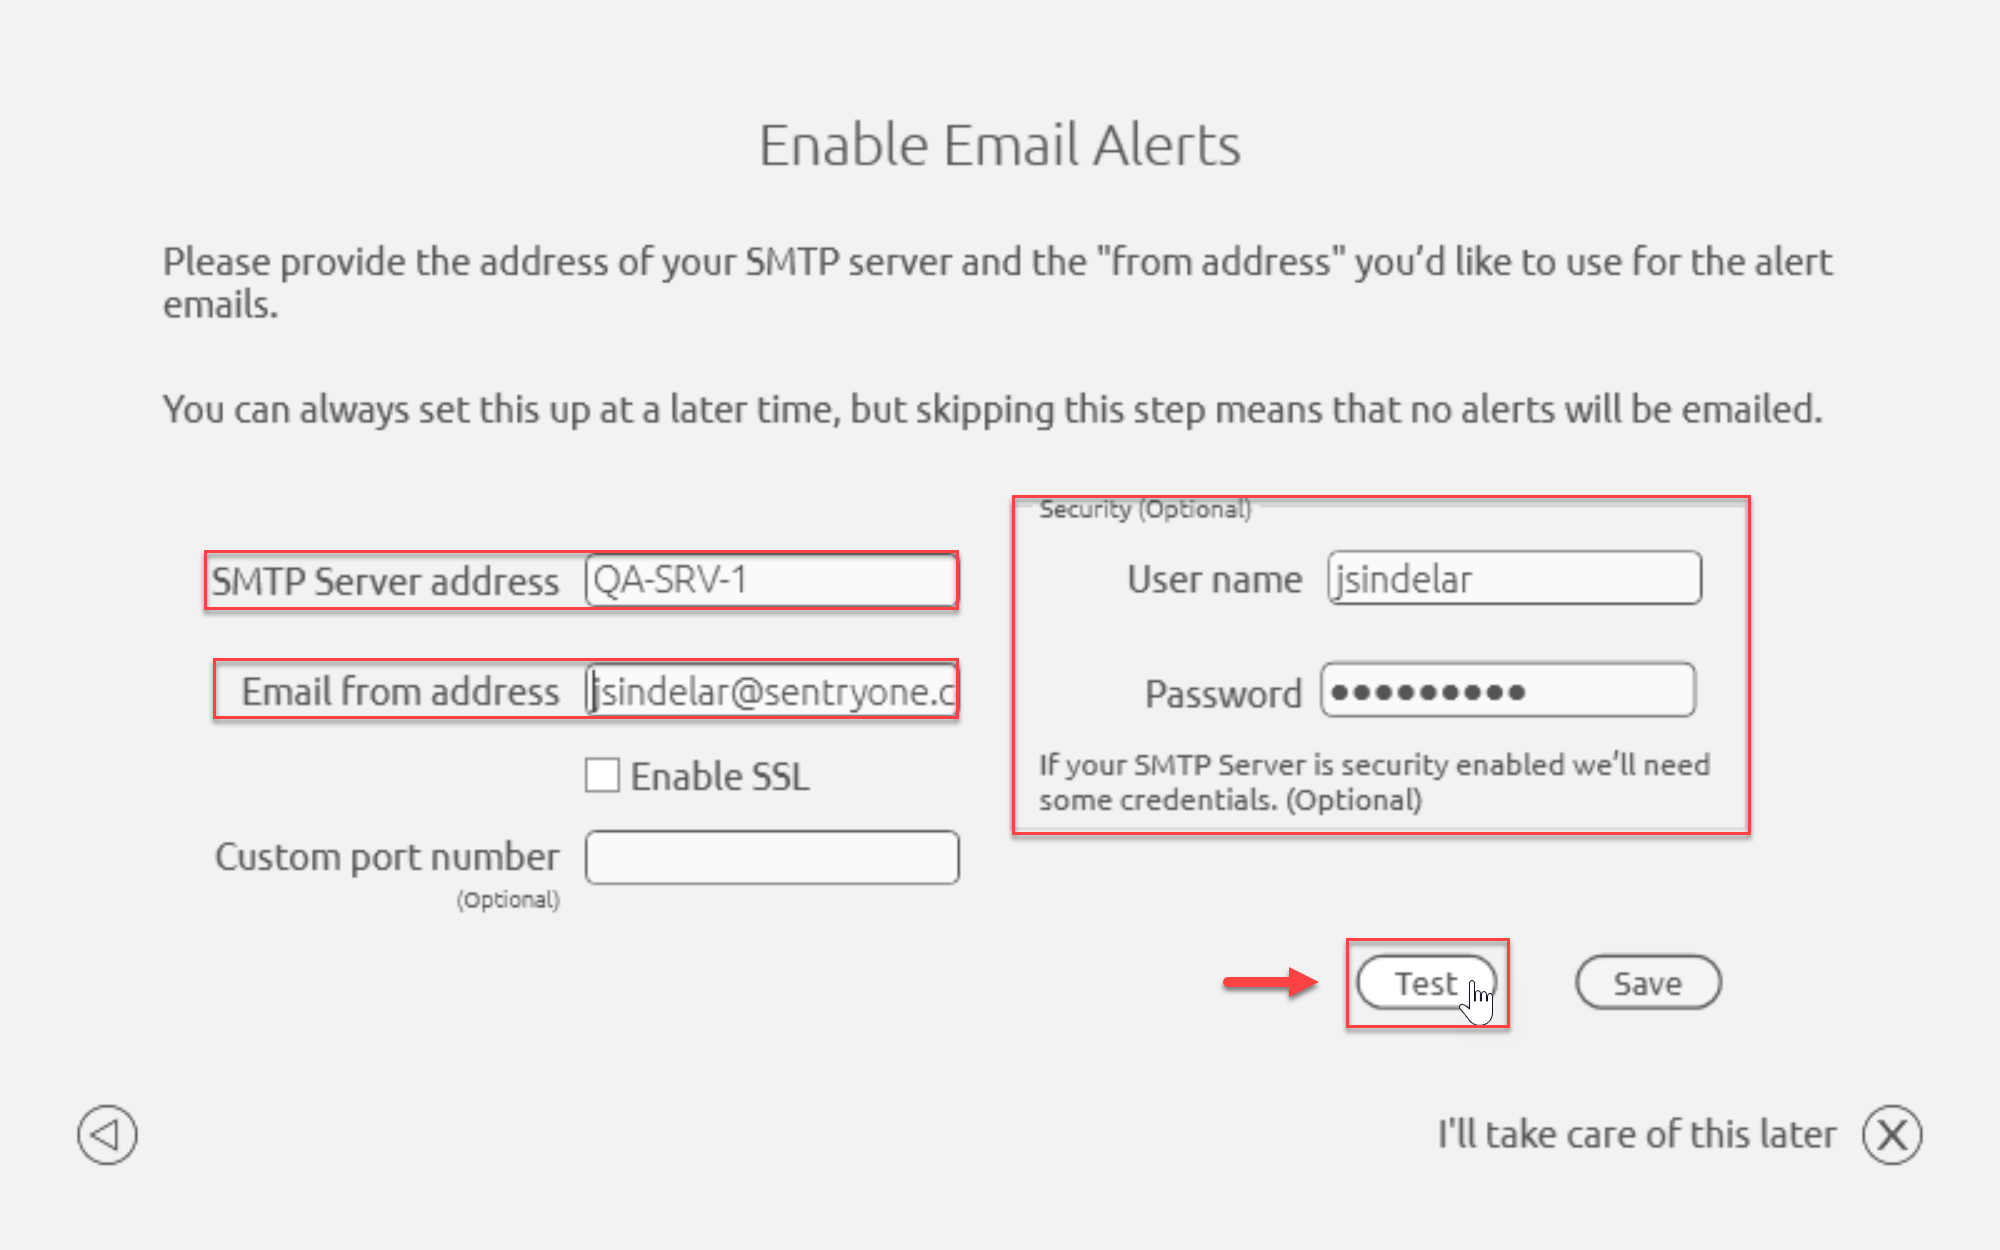 SentryOne On-boarding Enable Email Alerts